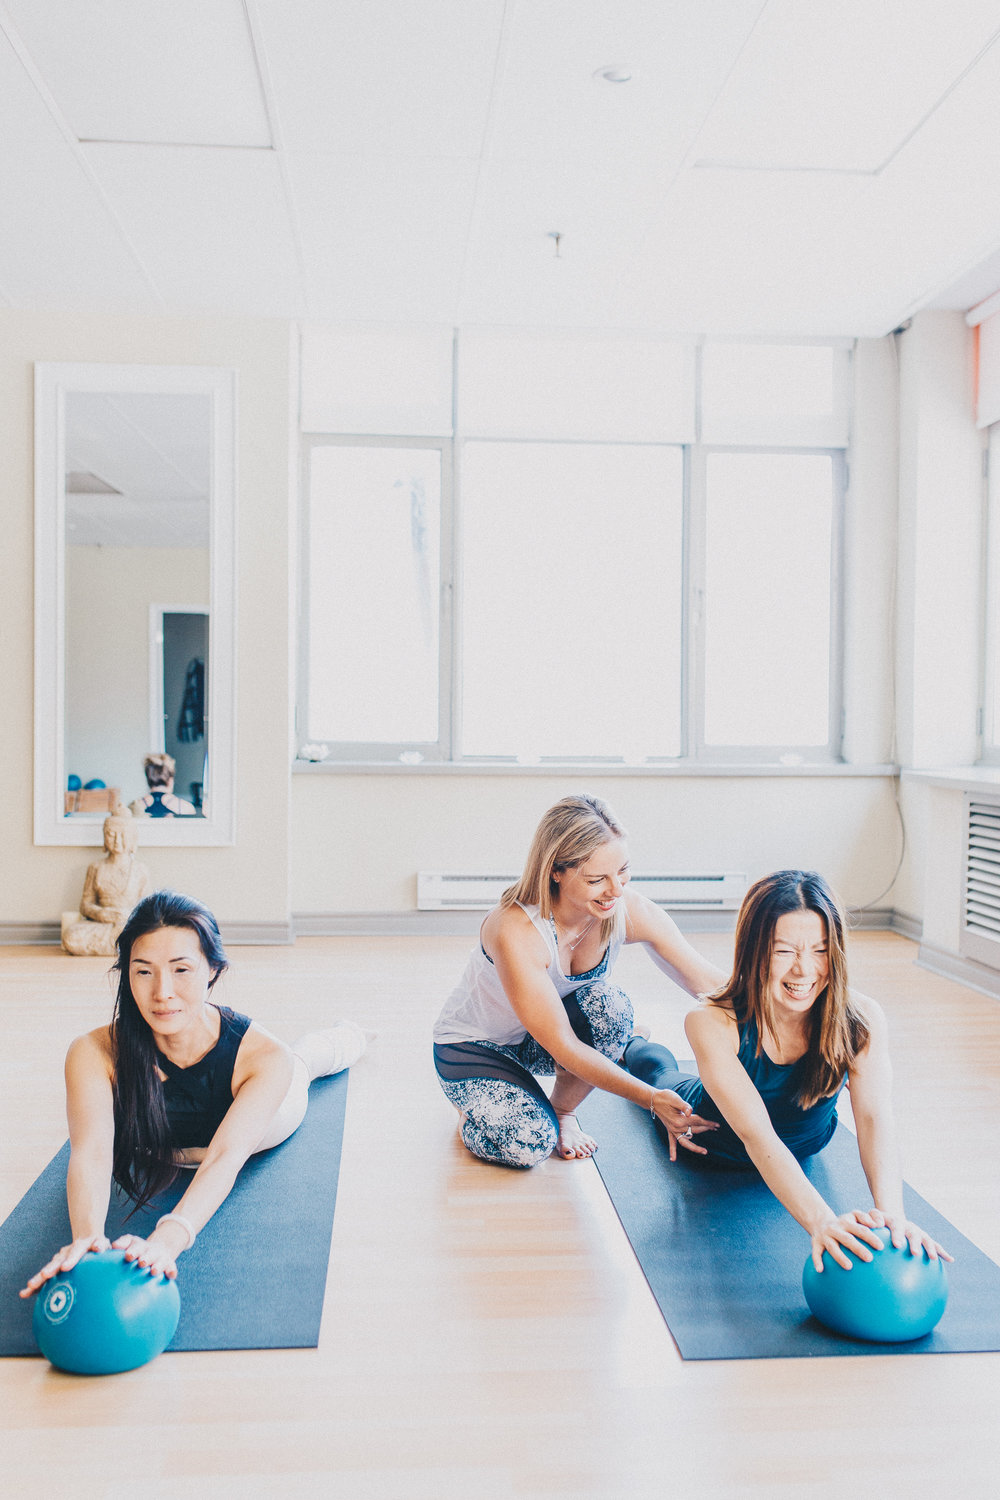 Imprint Pilates Group fitness classes, healthy fit woman, Swan Dive mini Stability ball, Anita Ivic